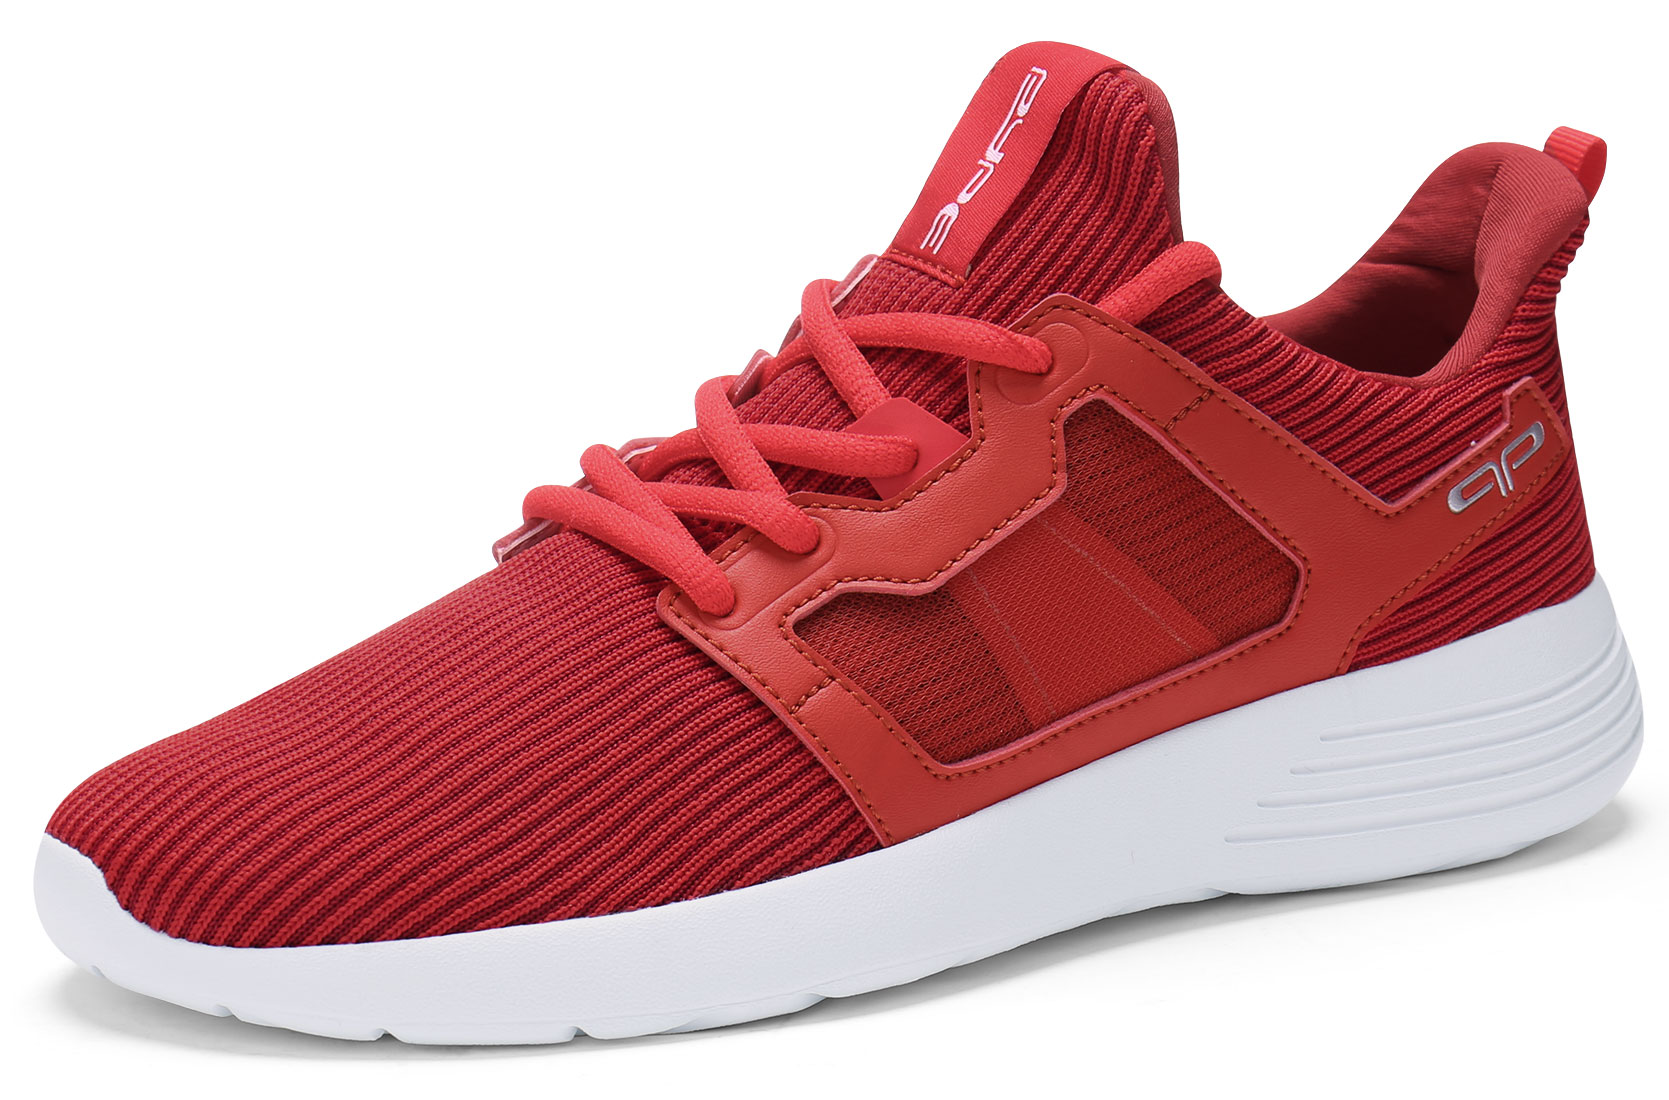 PYPE Women Lightweight Lace Up Mesh Training Sneakers Red US 11